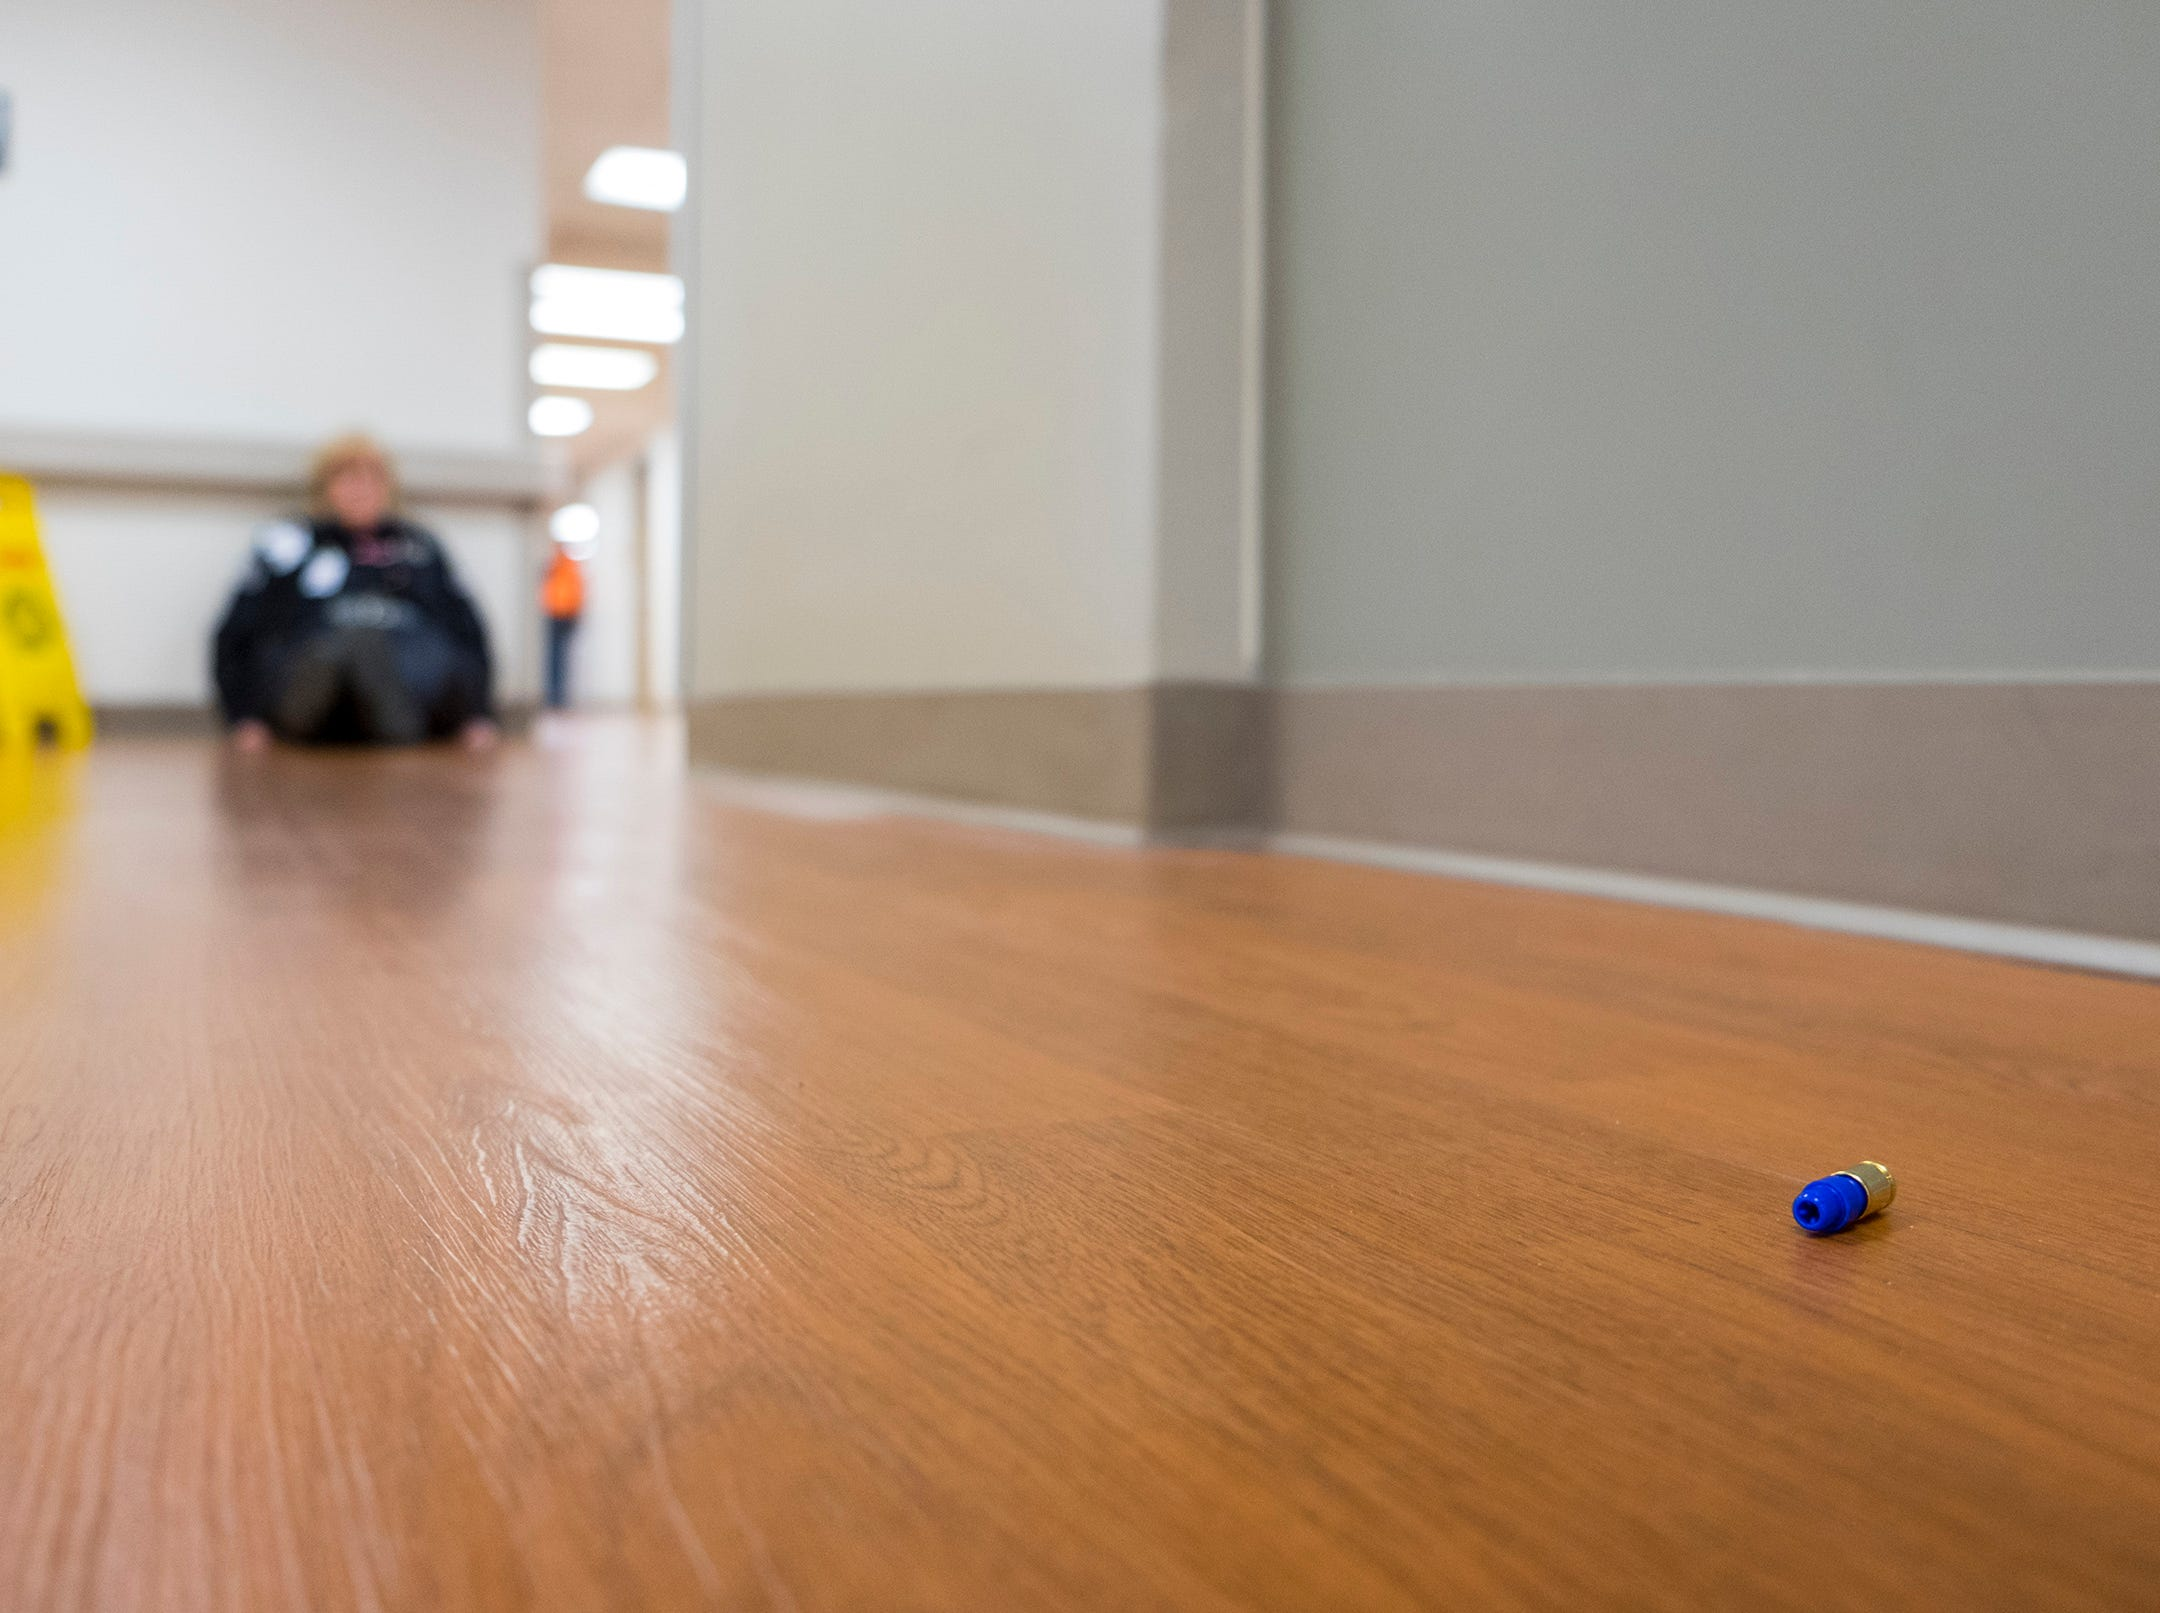 A training bullet lays on the floor in a hallway at Ascension River District Hospital during an active shooter training drill Thursday, Dec. 6, 2018.